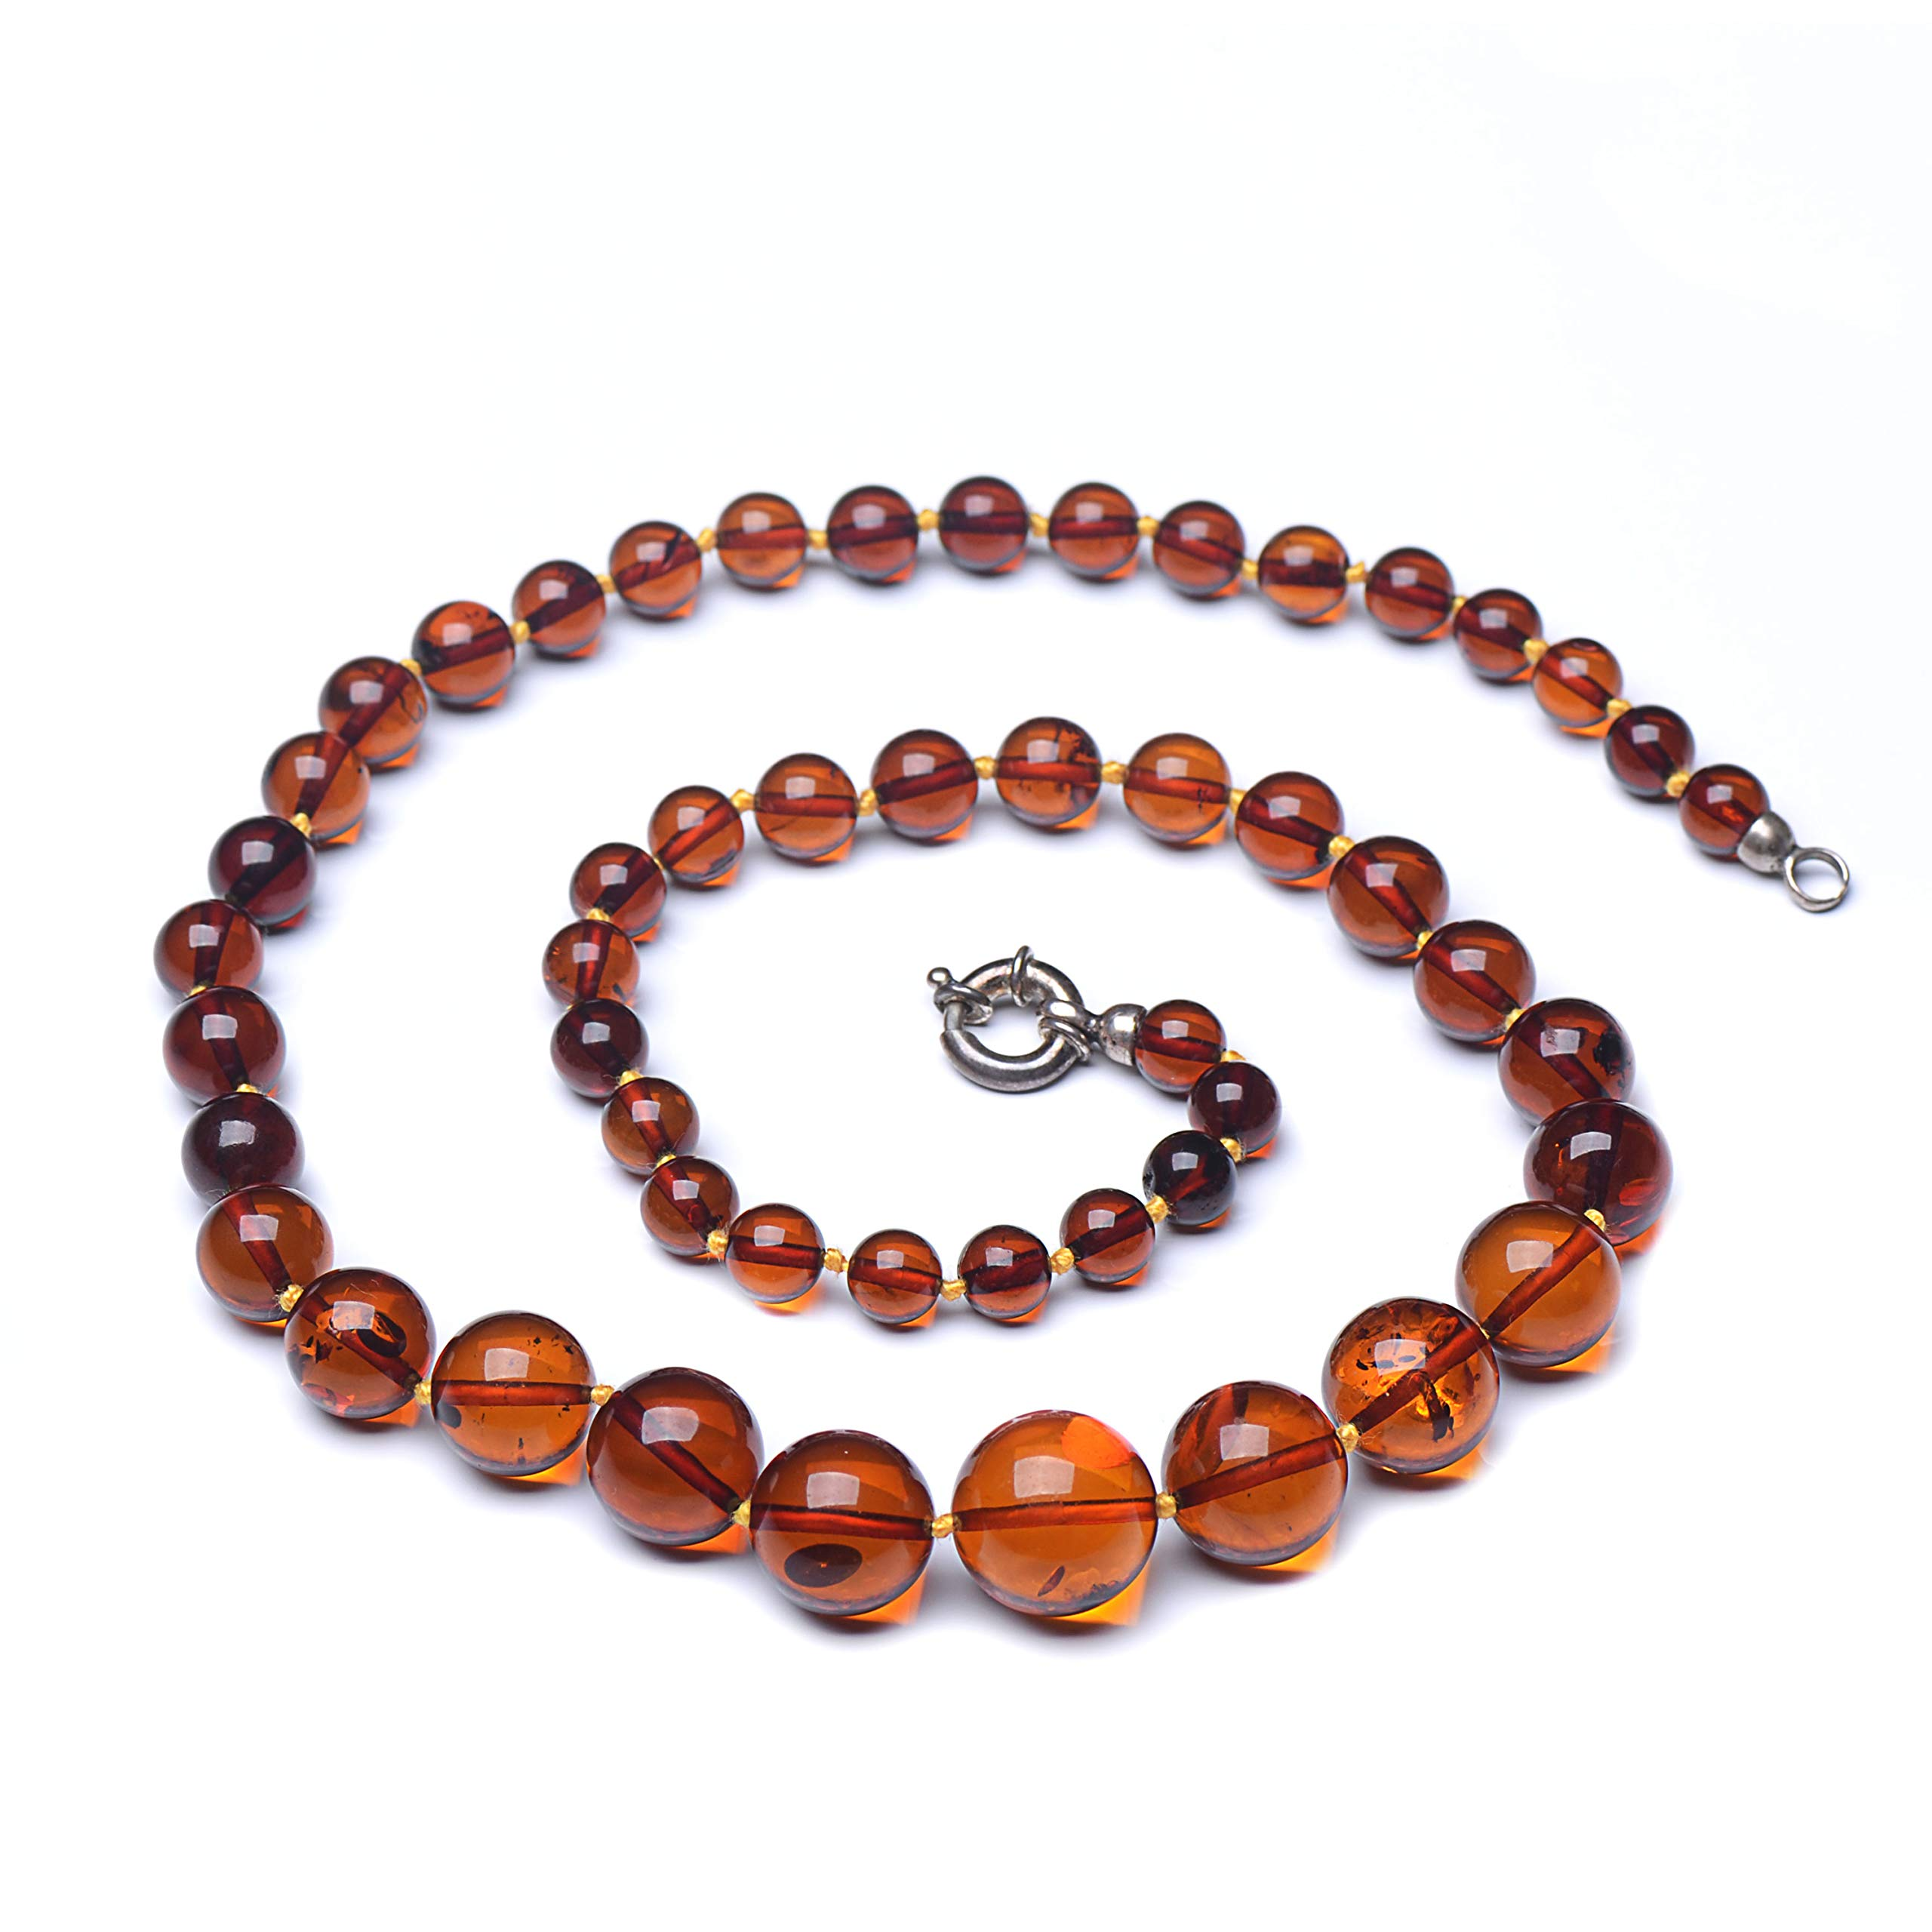 Round Bead Necklace - Cognac Baltic Amber Necklace - Unique Women Necklace by Genuine Amber